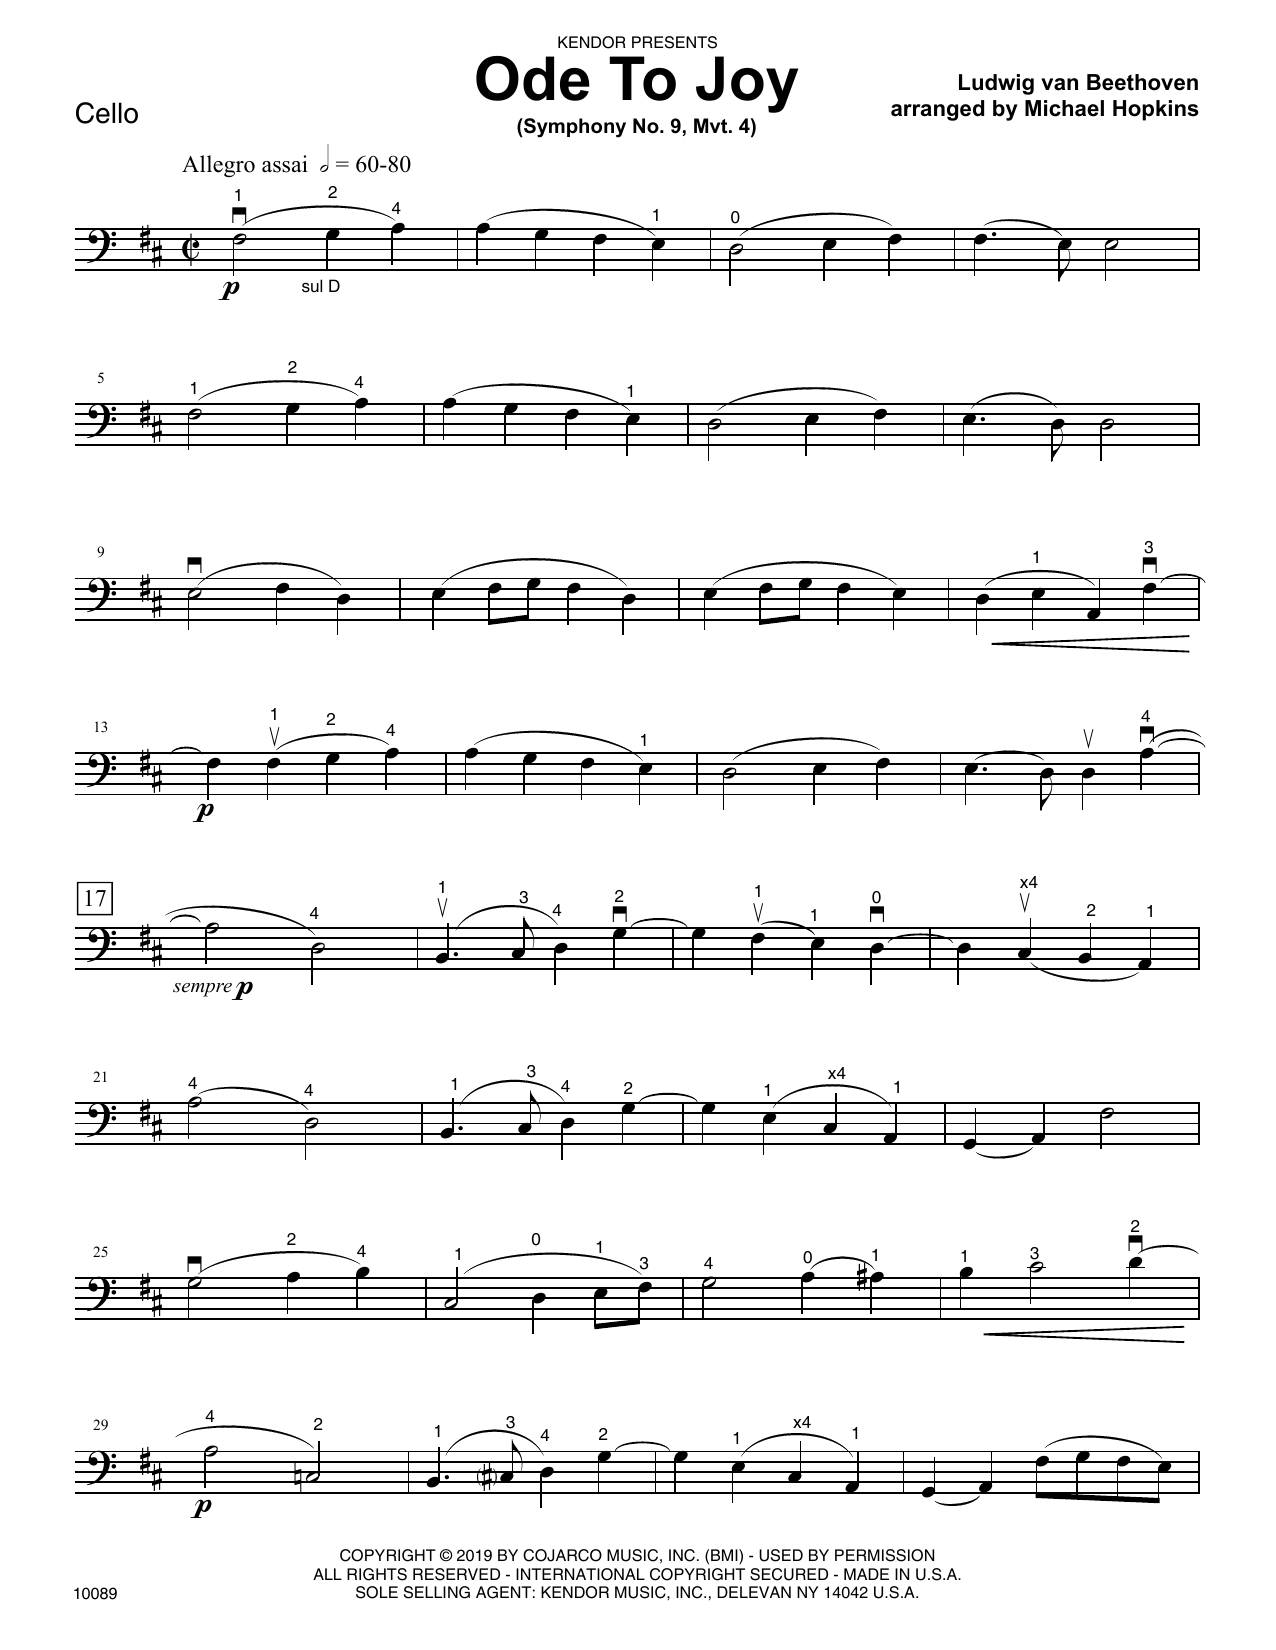 Michael Hopkins Ode To Joy (Symphony No. 9, Mvt. 4) - Cello sheet music notes and chords. Download Printable PDF.